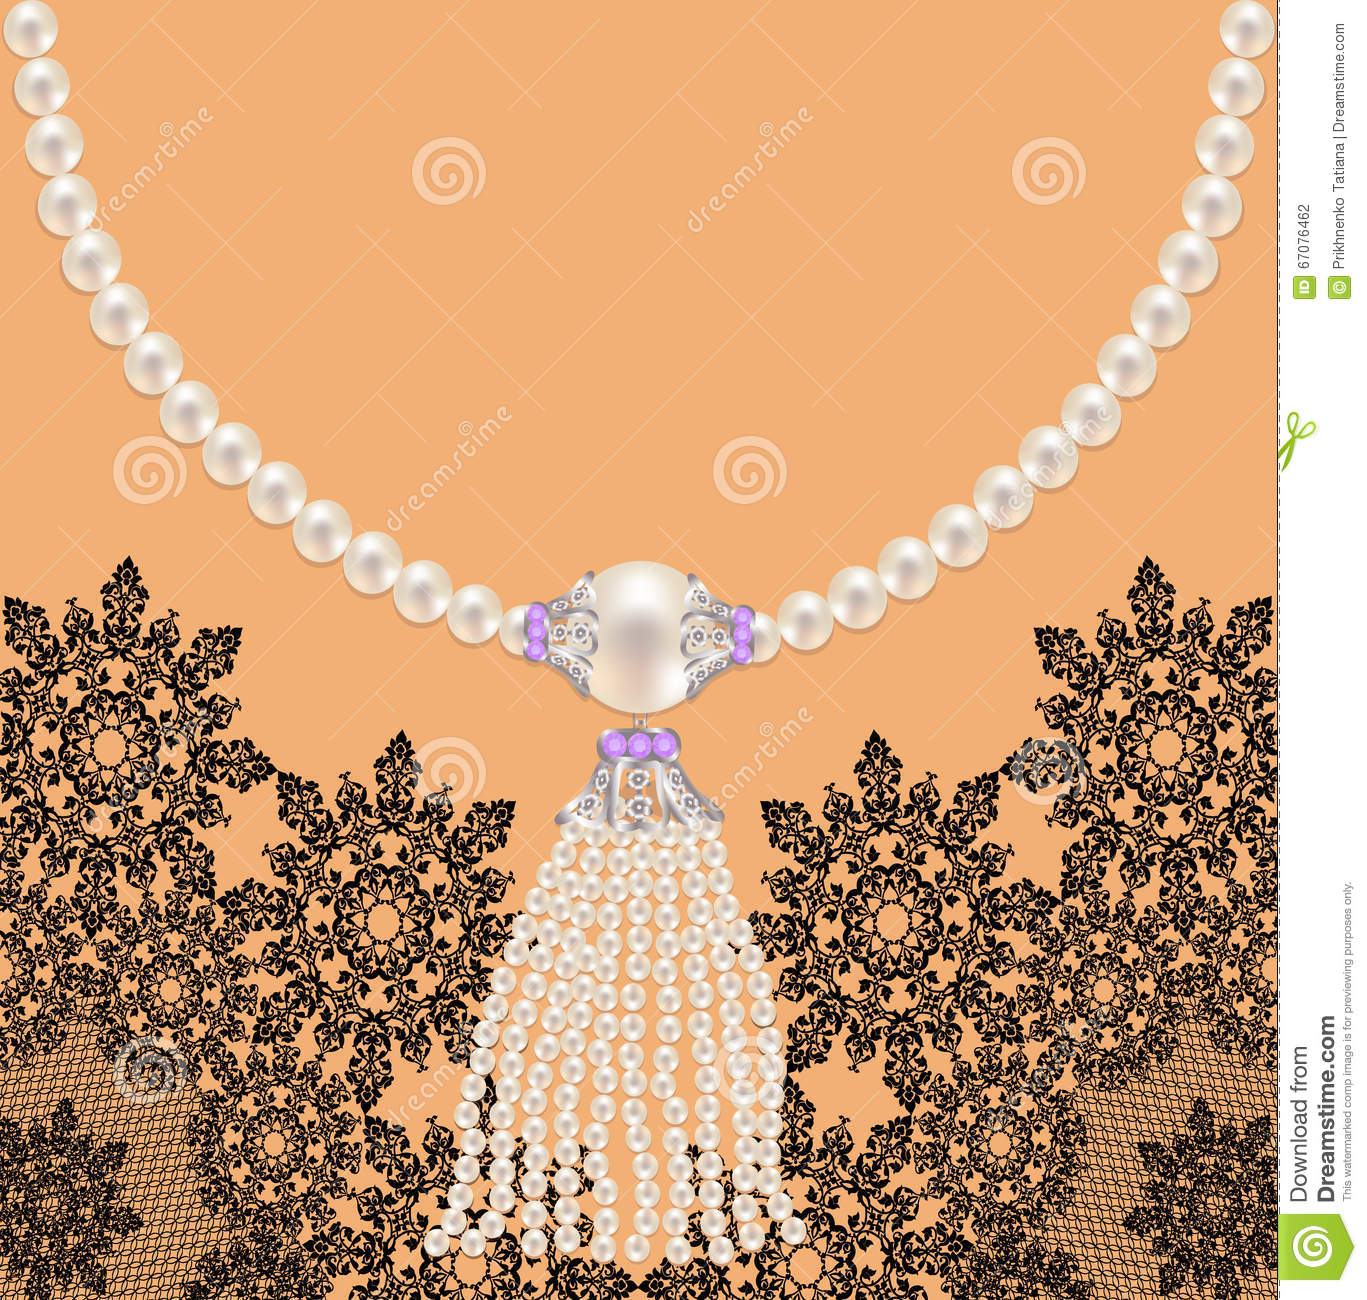 Background with necklace stock vector. Illustration of ...